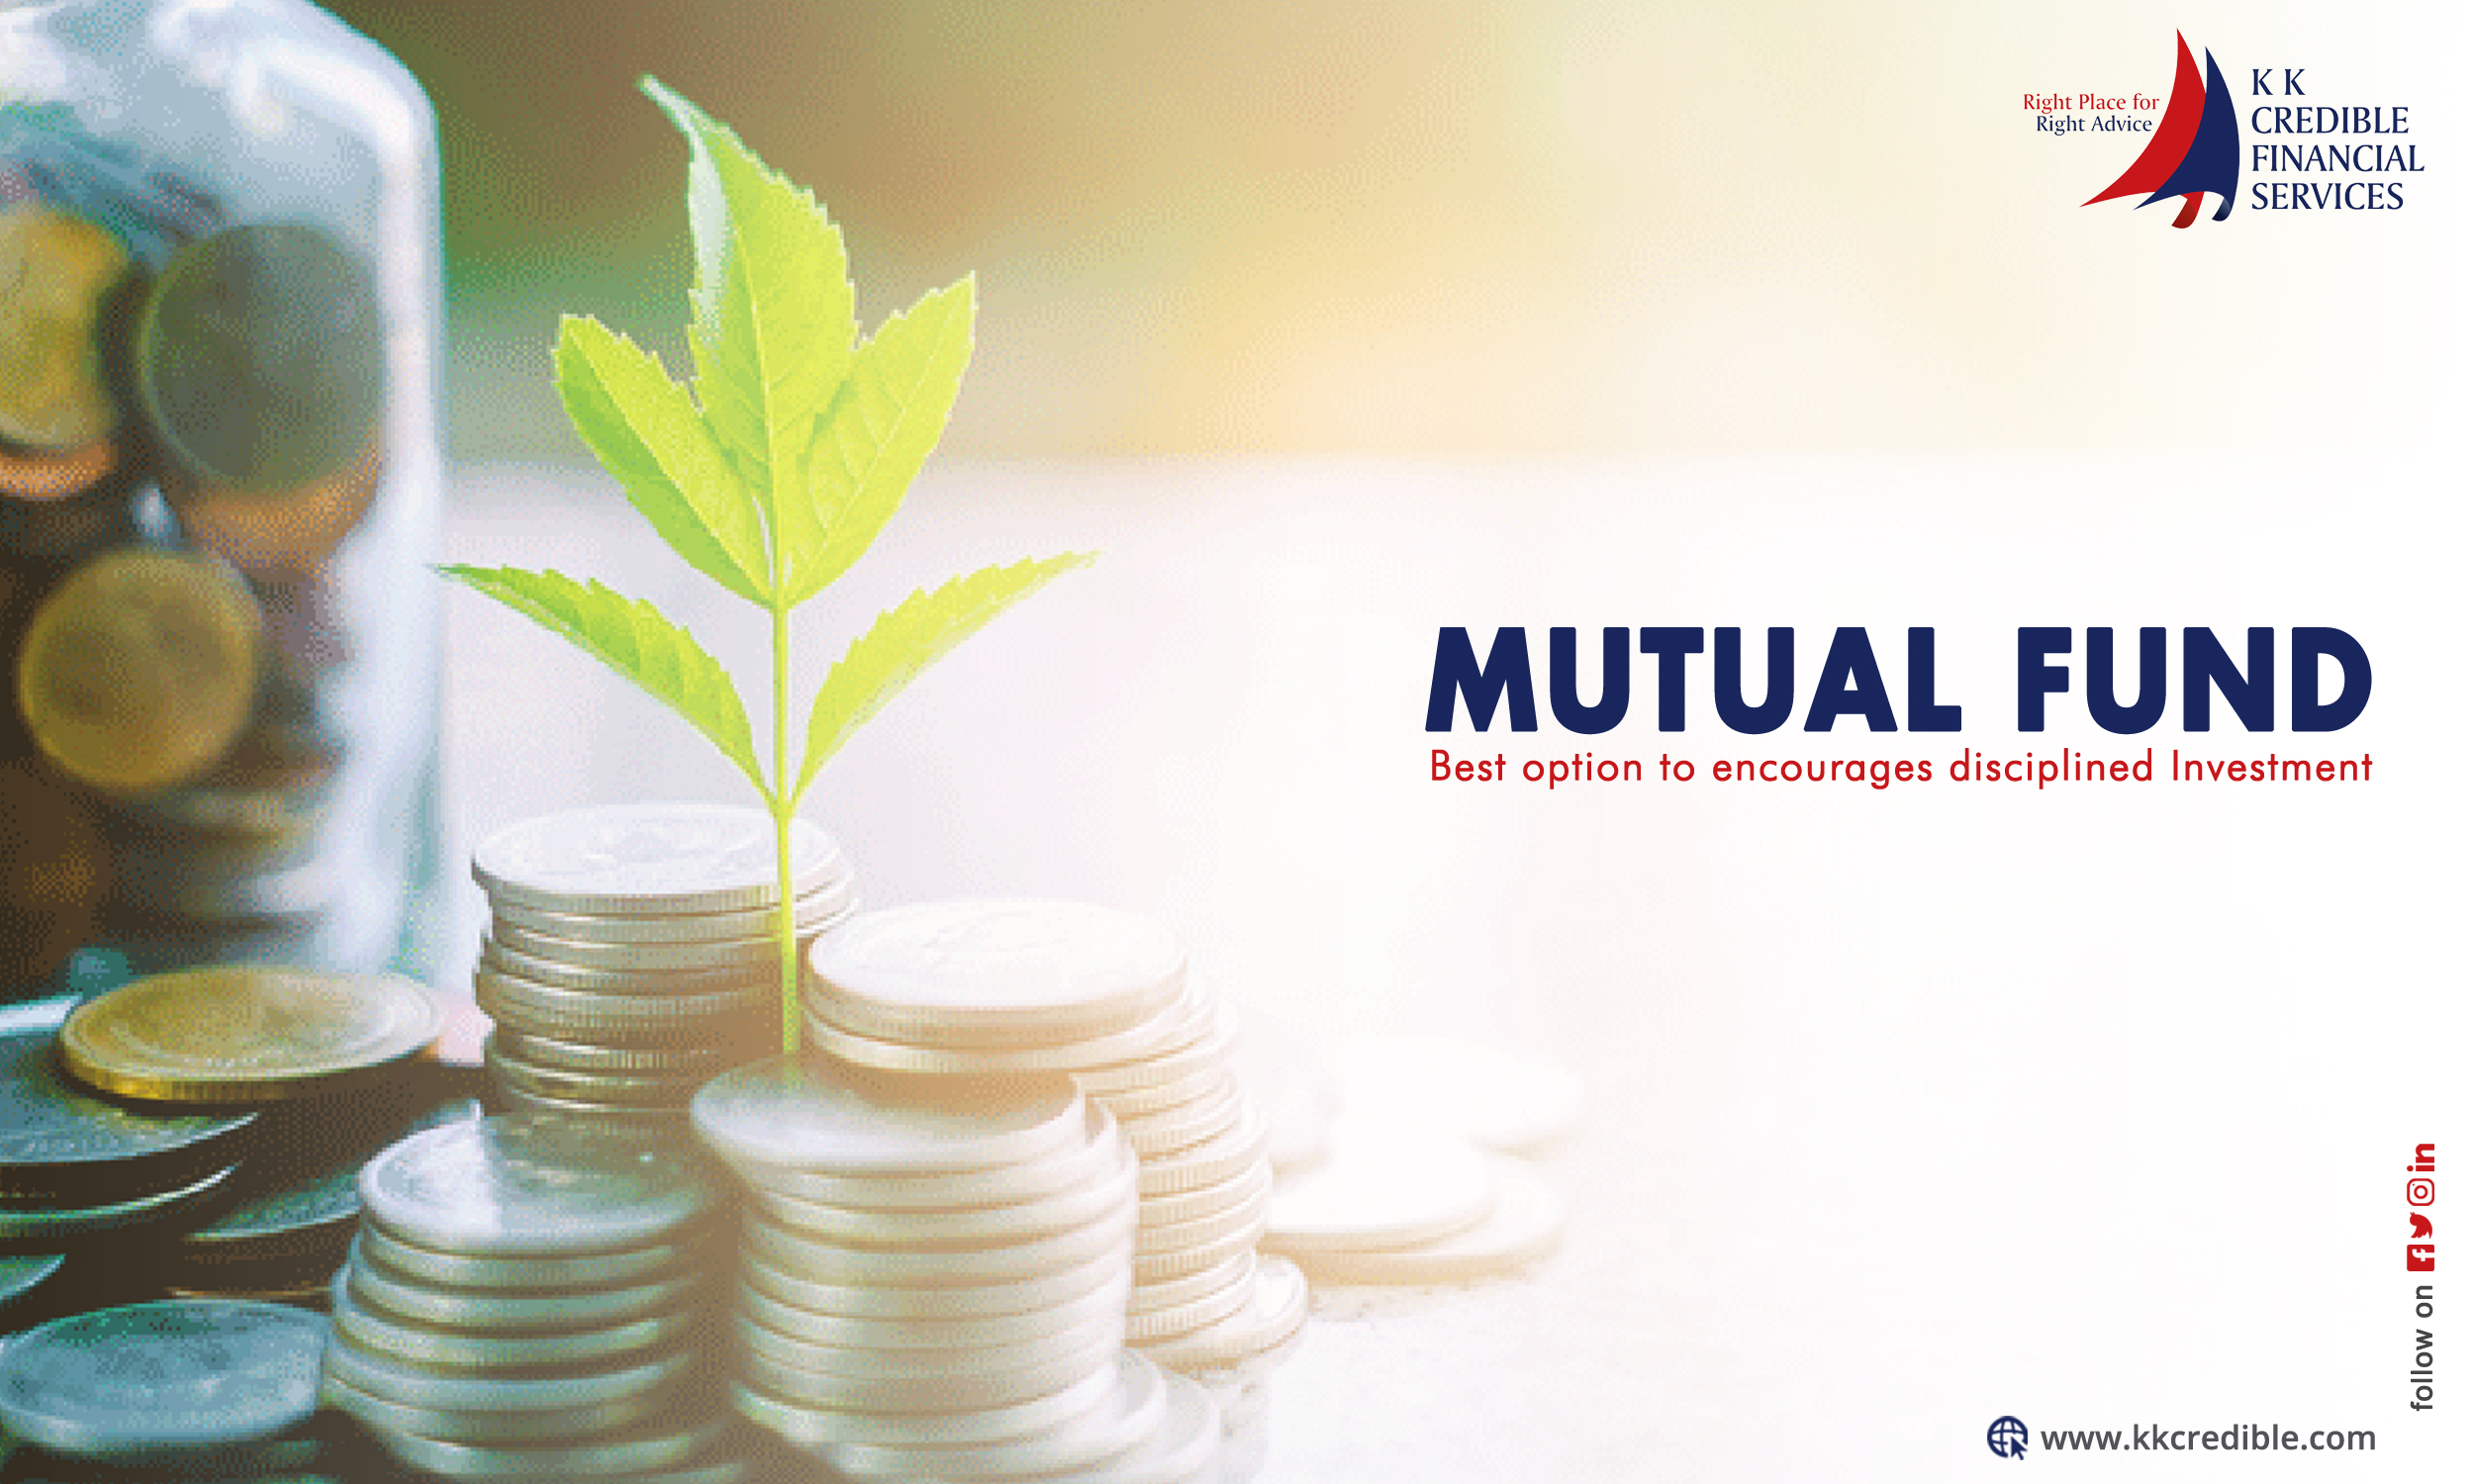 mutual-fund-best-option-to-encourage-disciplined-investment